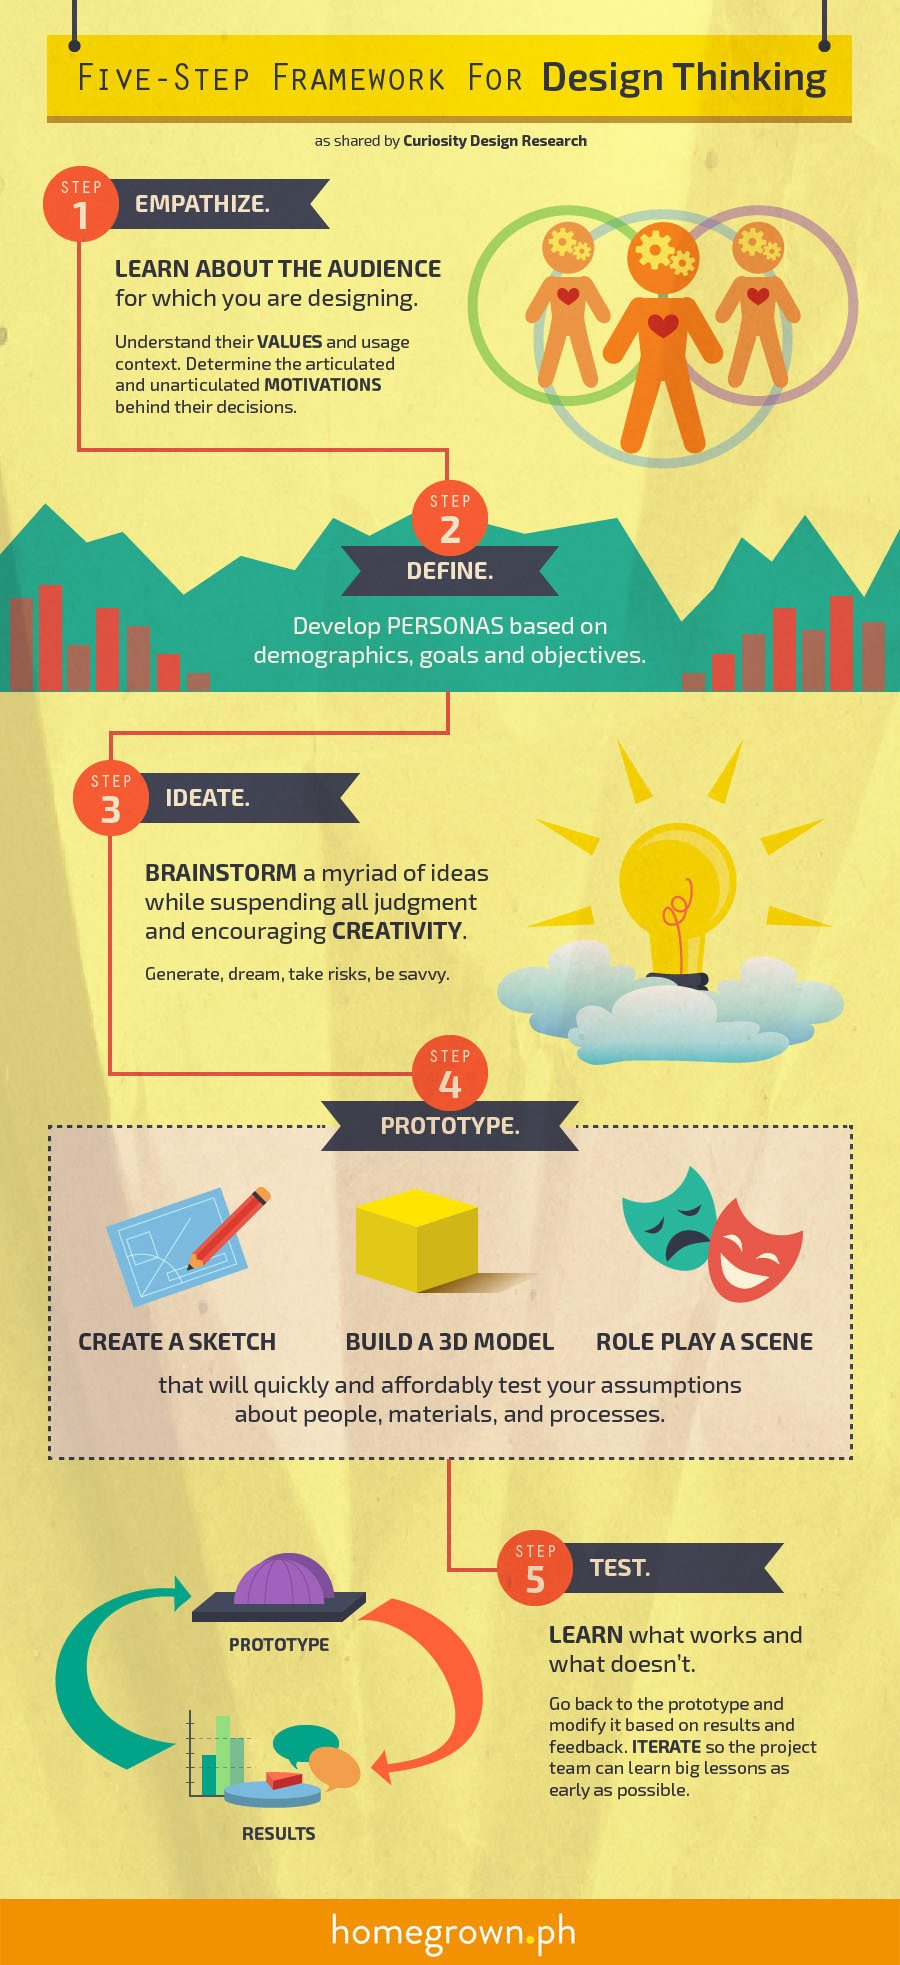 Five Step Framework for Design Thinking Infographic